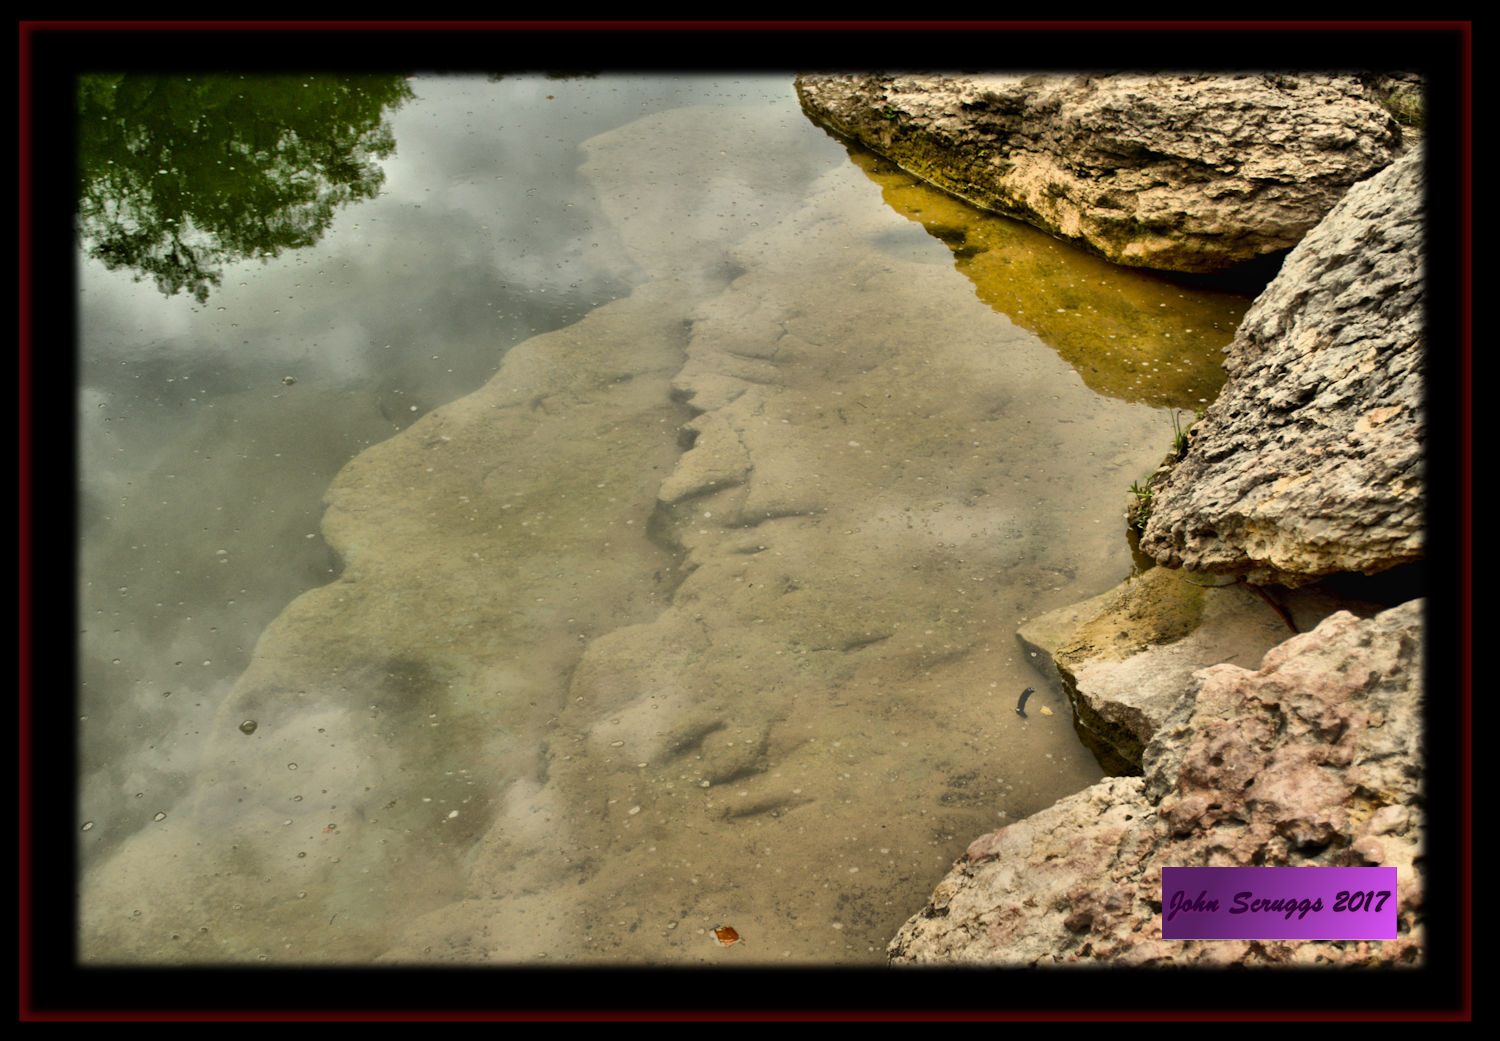 Dinosaur Valley, Texas State Park - Ancient Footprints in